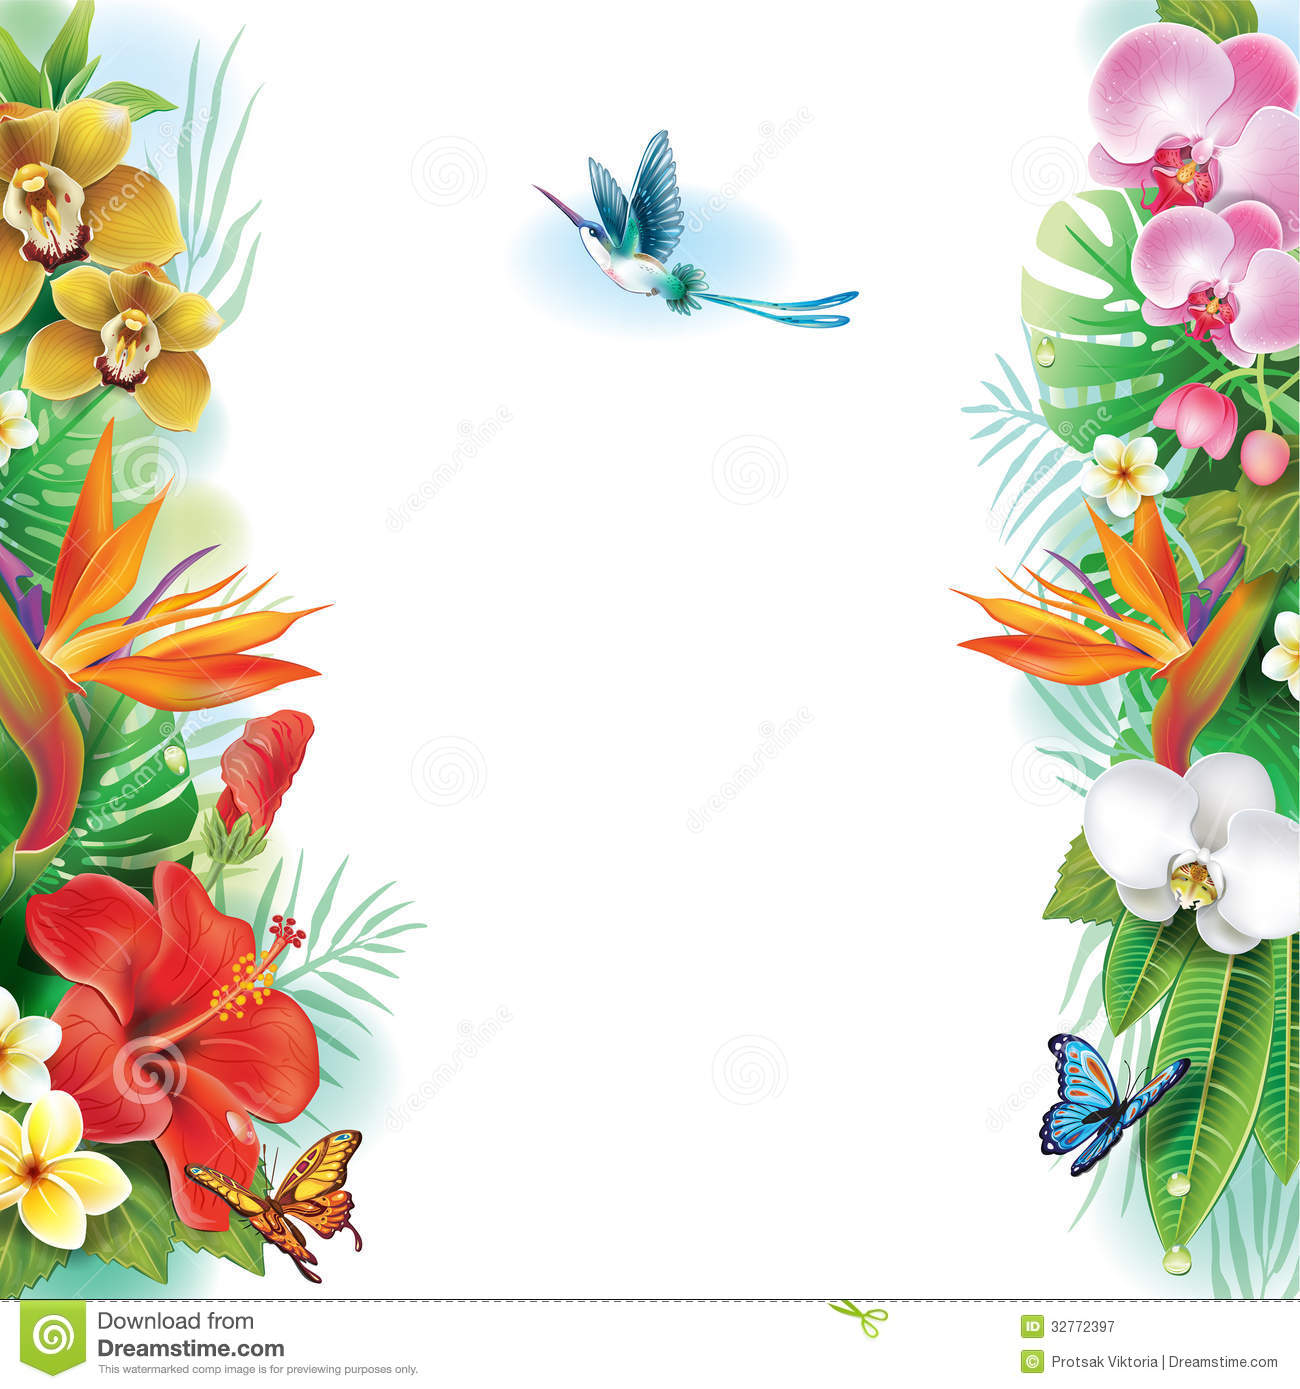 Wallpaper clipart tropical Design Clipart And Free Flower